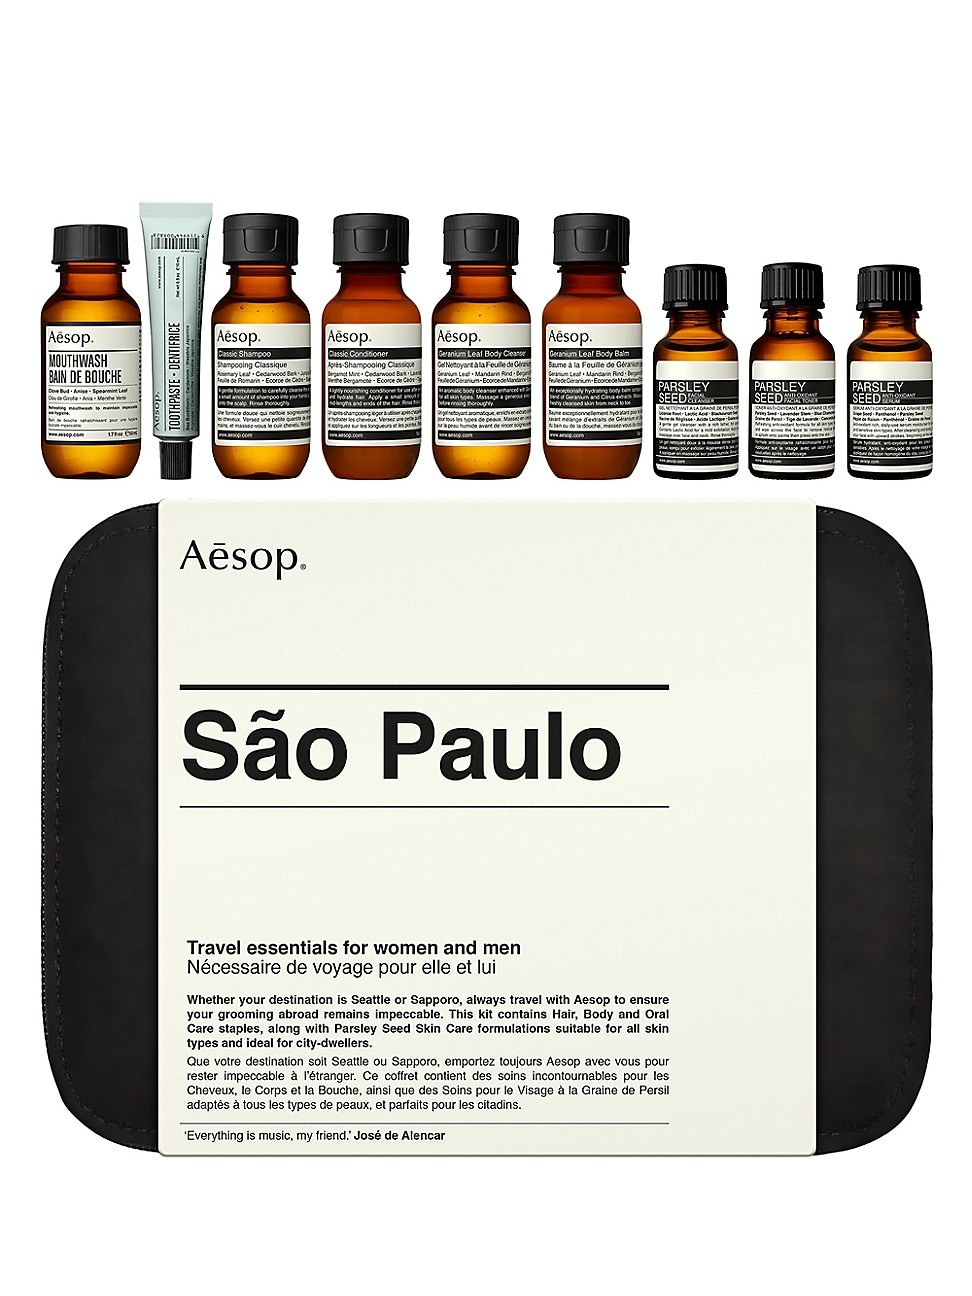 WHAT IT IS Whether your destination is Seattle or Sapporo, always travel with Aesop to ensure your grooming abroad remains impeccable. This kit contains Hair, Body and Oral Care staples to cleanse and refresh, along with Parsley Seed Skin Care Formulations suitable for all skin types and ideal for city-dwellers. Imported. Our stores in São Paulo, and recent store openings in Montréal, inspired the names of these new compositions. The cases are designed for customers to refill with full-size prod